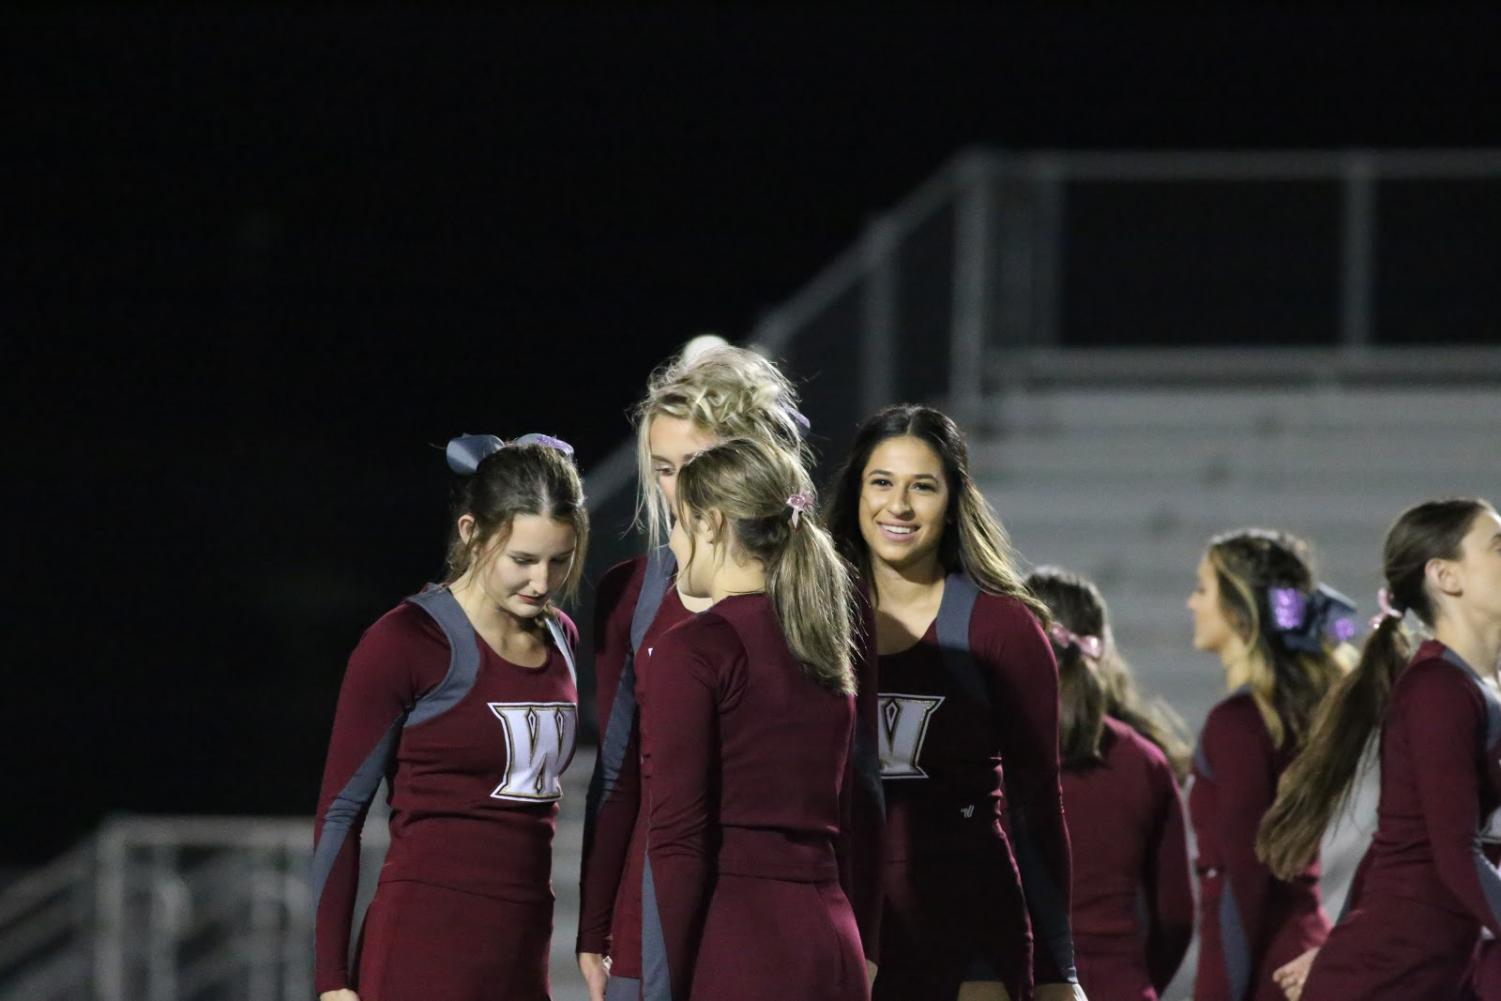 During the last halftime performance of the season Oct. 26, Emily Brustman gets set with her stunt group before partner stunts. This senior night routine was created to focus mainly on the seniors due to this being their last high school game. Photo by Blake Wong.